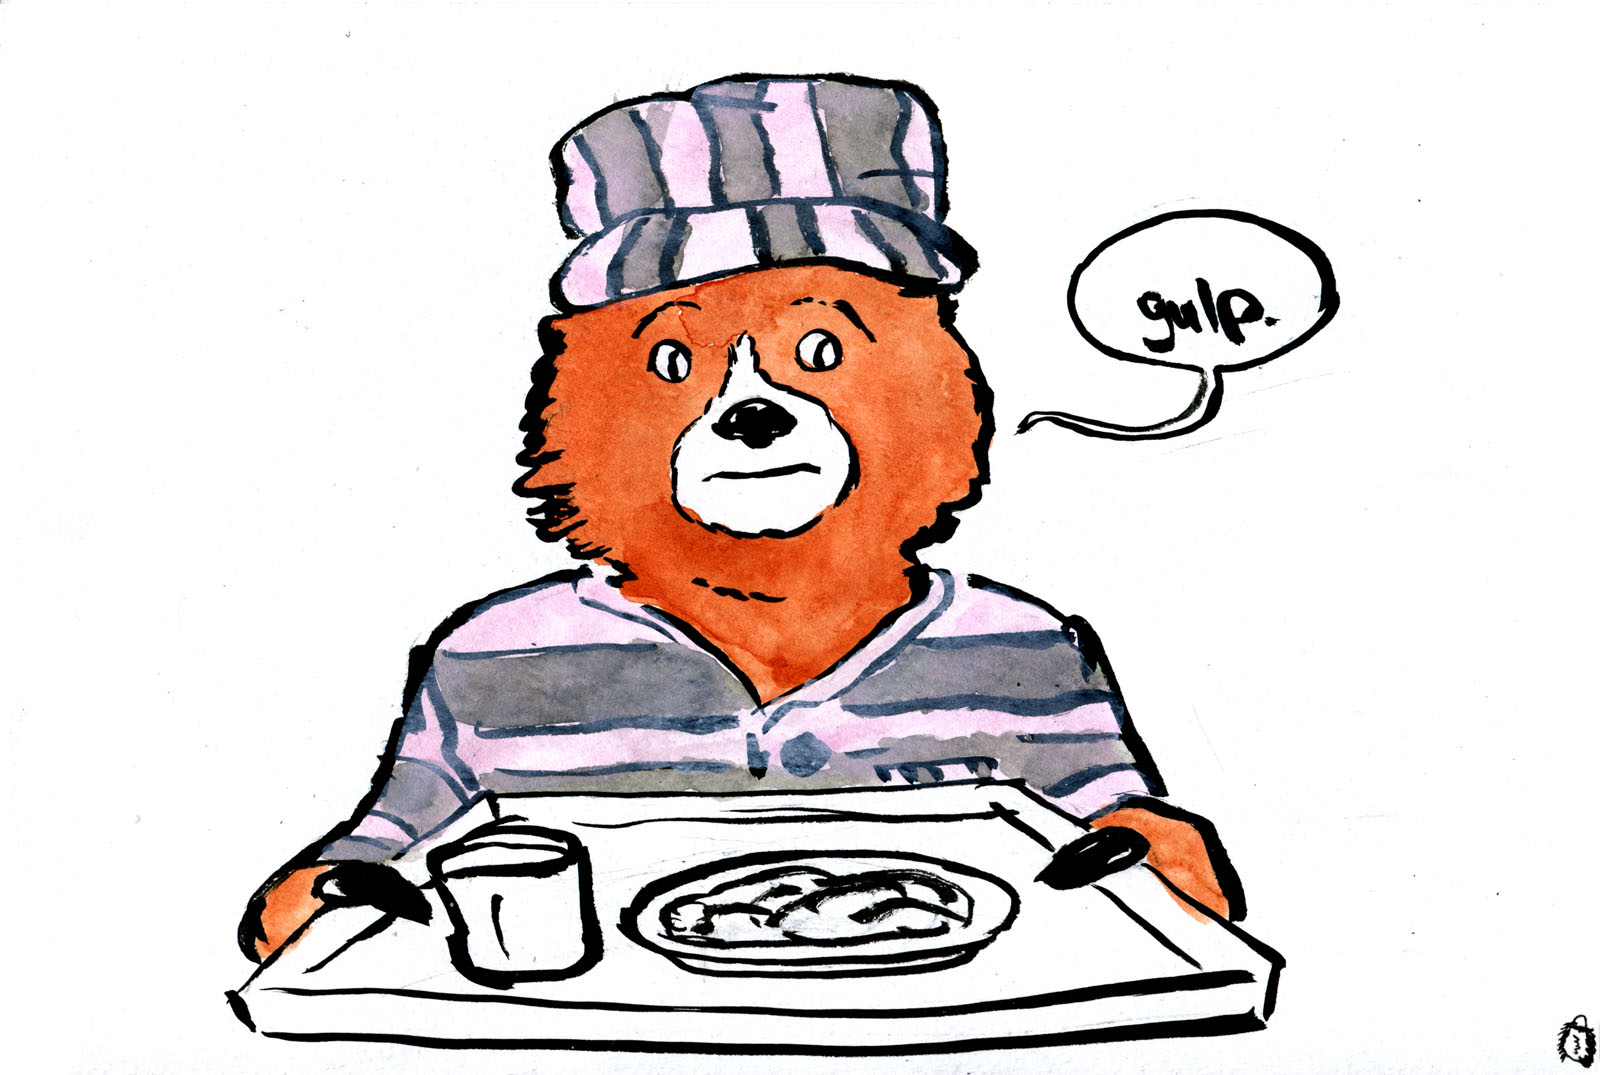 """""""Paddington 2"""" proves to be as sweet as marmalade  By Oscar Chavez Castaneda  From the depths of Darkest Peru, Paddington bear made his way into our hearts in 2014's """"Paddington"""". Now settled into the home of the Browns, we are treated to another adventure with the chivalrous bear in the delightful sequel, """"Paddington 2"""". Over the course of 103 minutes we are taught the importance of manners, the power of a marmalade sandwich, and the astounding range of Hugh Grant.  Paddington is greatly enjoying his life in London but is worried about what to get his Aunt Lucy for her 100th birthday. Her lifelong dream had been to visit London but when her and her husband, Pastuzo, happen upon young Paddington as an orphaned cub, her life was changed for the better. Now, Paddington wants to find Aunt Lucy the perfect gift as a thank you for all she has done for him.  Such a simple plot yields astonishing results. We see the impact such a small bear can have in such a large city. This isn't due to the fact that he is a walking, talking bear. It's due to what his aunt has taught him as he grew up; always look for the good in people. A small idea that yields massive results.  From the moment he leaves the house, we see the positive effect Paddington and his ethos have on the people who surround him. He is quick to offer a marmalade sandwich for breakfast to his bike-riding friend. While hitching a ride on a garbage truck, Paddington helps the worker practice for his cabbie exam. Before leaving the neighborhood, Paddington reminds the neighborhood doctor to grab his keys before the door locks behind him. With these kind gestures, Paddington remembers his manners and in doing so, elevates the lives of all those he meets.  Even when he finds himself in an unsavory position (he winds up wrongly imprisoned!), Paddington keeps his aunt's wisdom at heart. While locked up with the most hardened of criminals, Paddington manages to befriend the gruffest of the inmates and make good use of his """